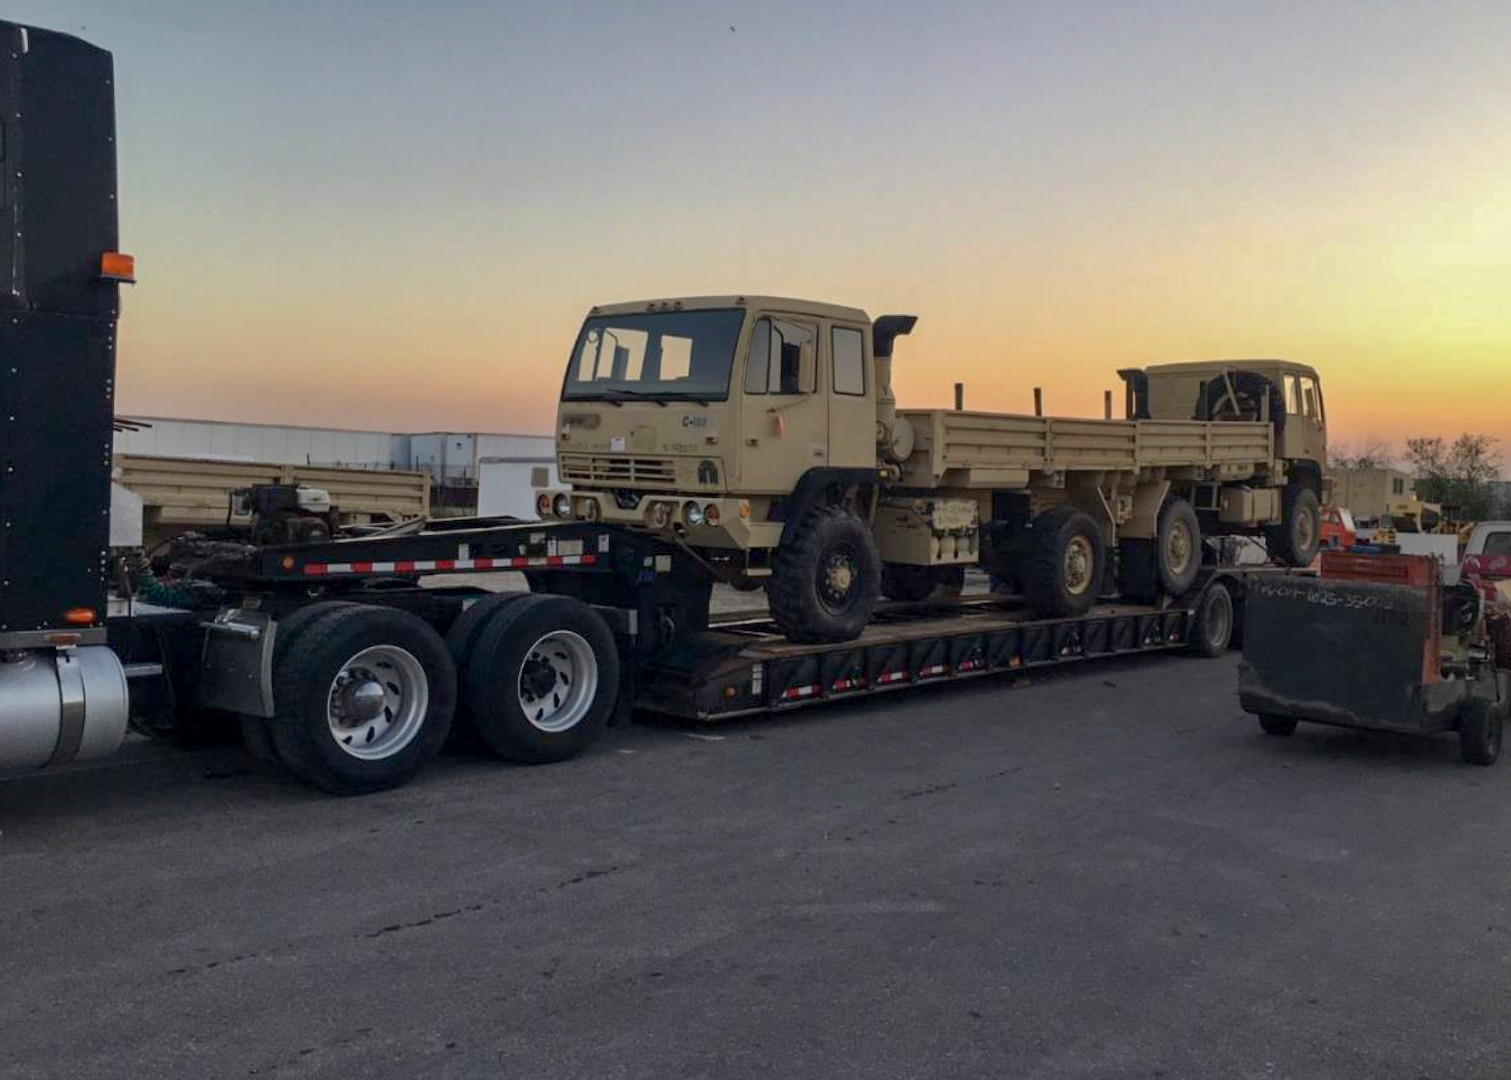 Two former military trucks, issued by DLA Disposition Services through the 1033 program to Texas law enforcement, depart the Texas Federal State Property San Antonio Office as the sun sets. The next morning the trucks were operating on the east side of Houston rescuing people from flooding caused by Hurricane Harvey.